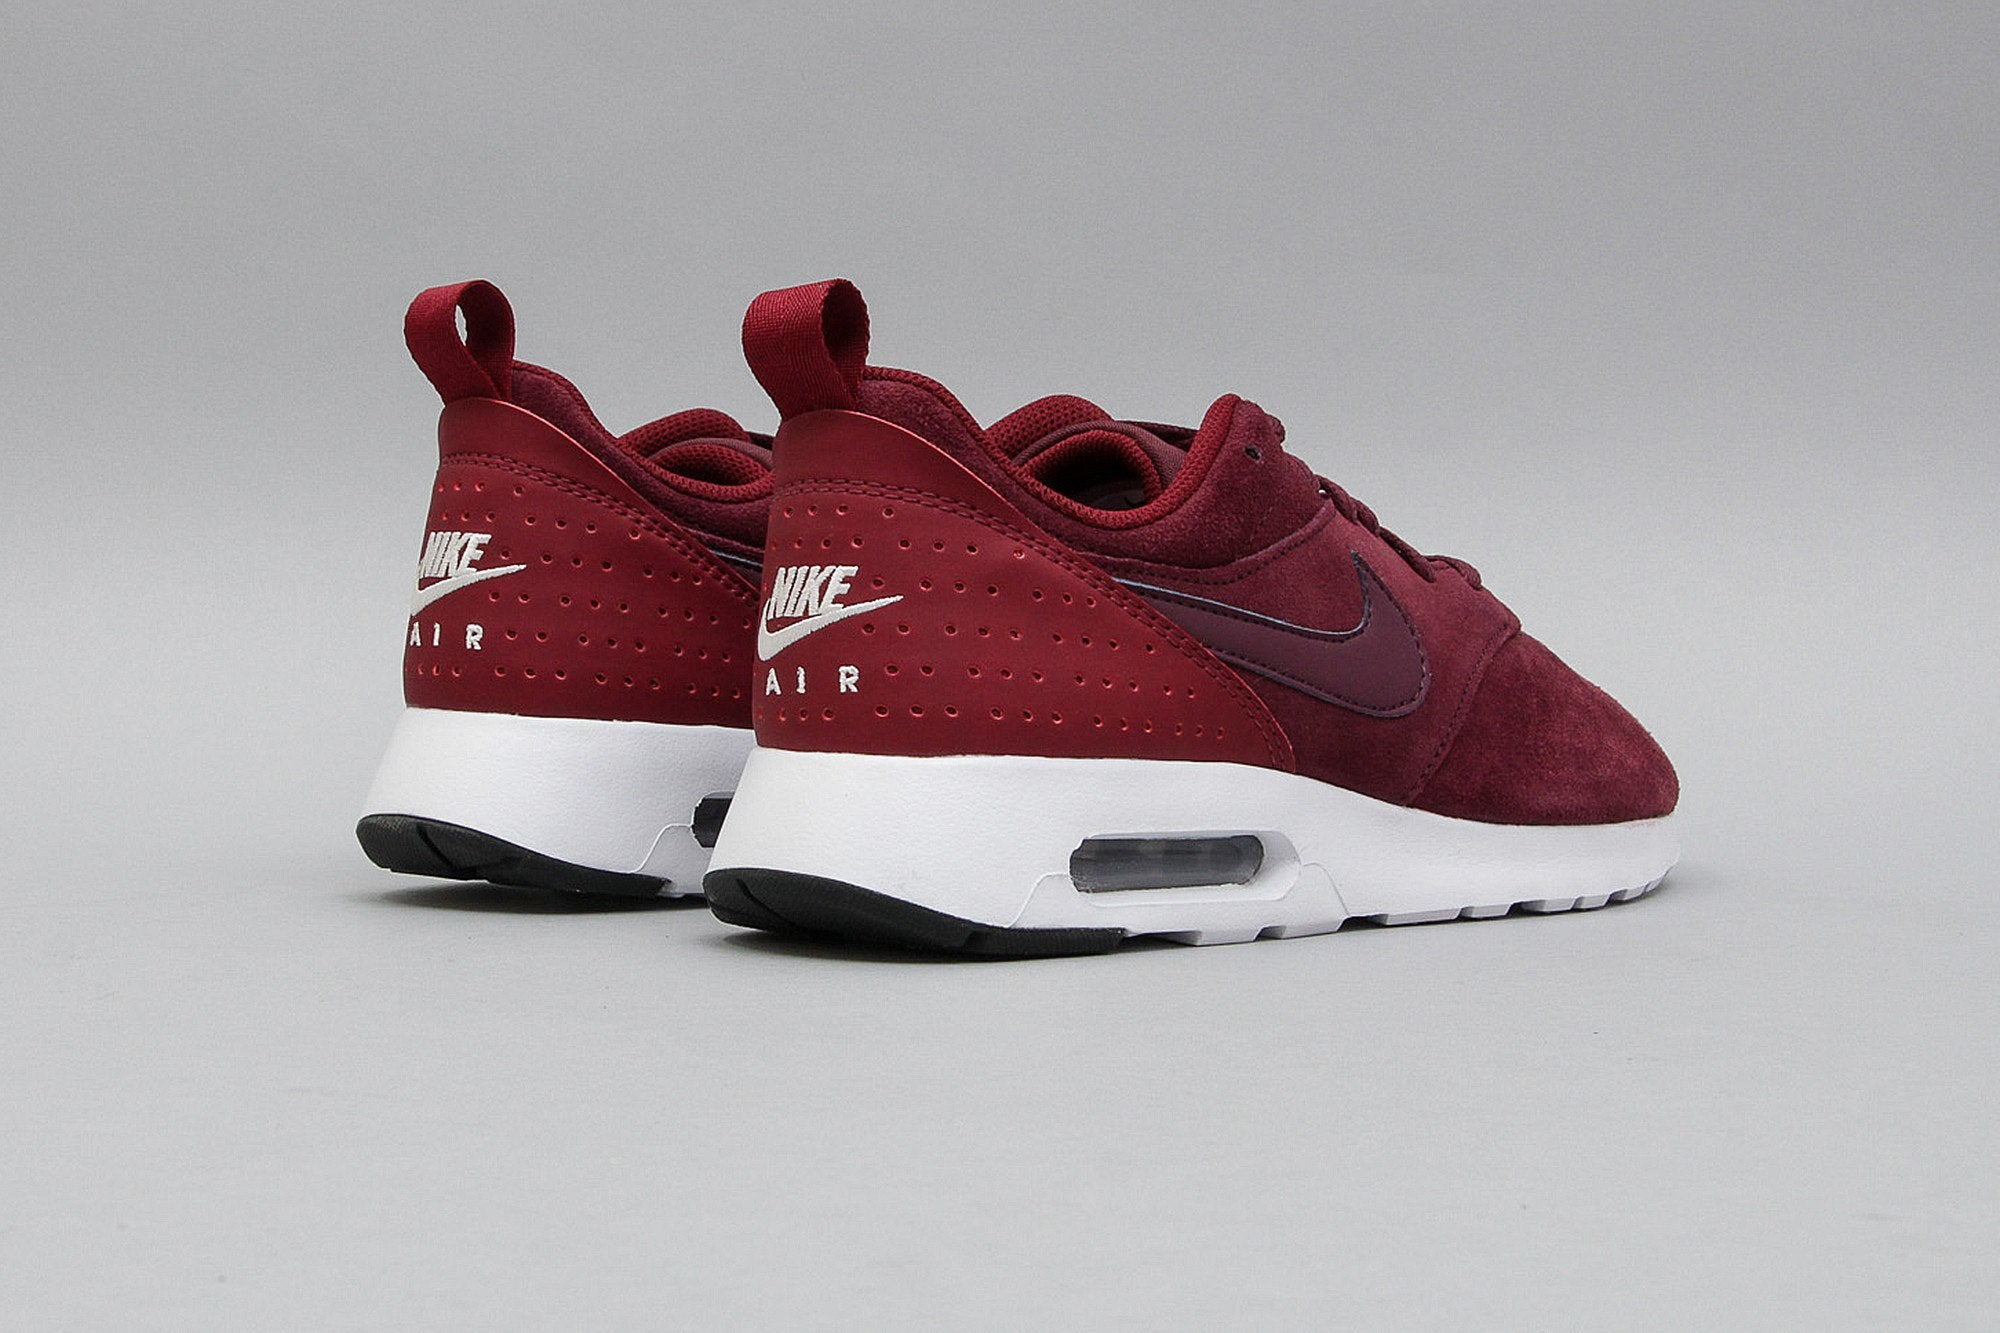 huge selection of 761ab f20da Nike Air Max Tavas Ltr Night Maroon